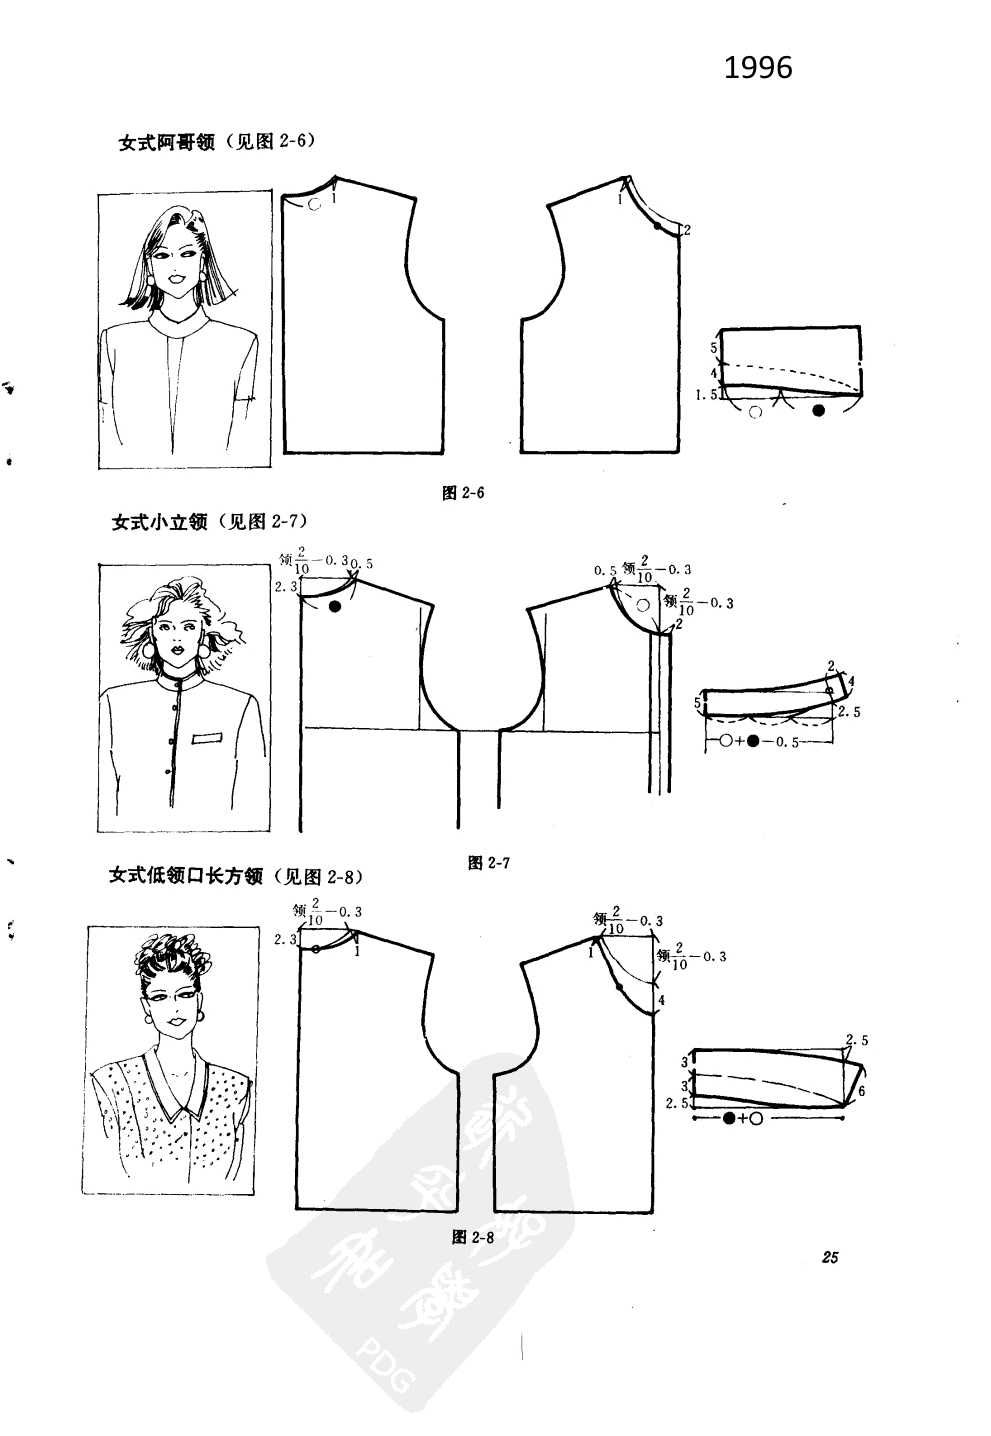 Pin by ies on pattern design neclines and collars chinese collar pattern design fashion design sewing patterns collars stitching neckline modeling blouses jeuxipadfo Image collections